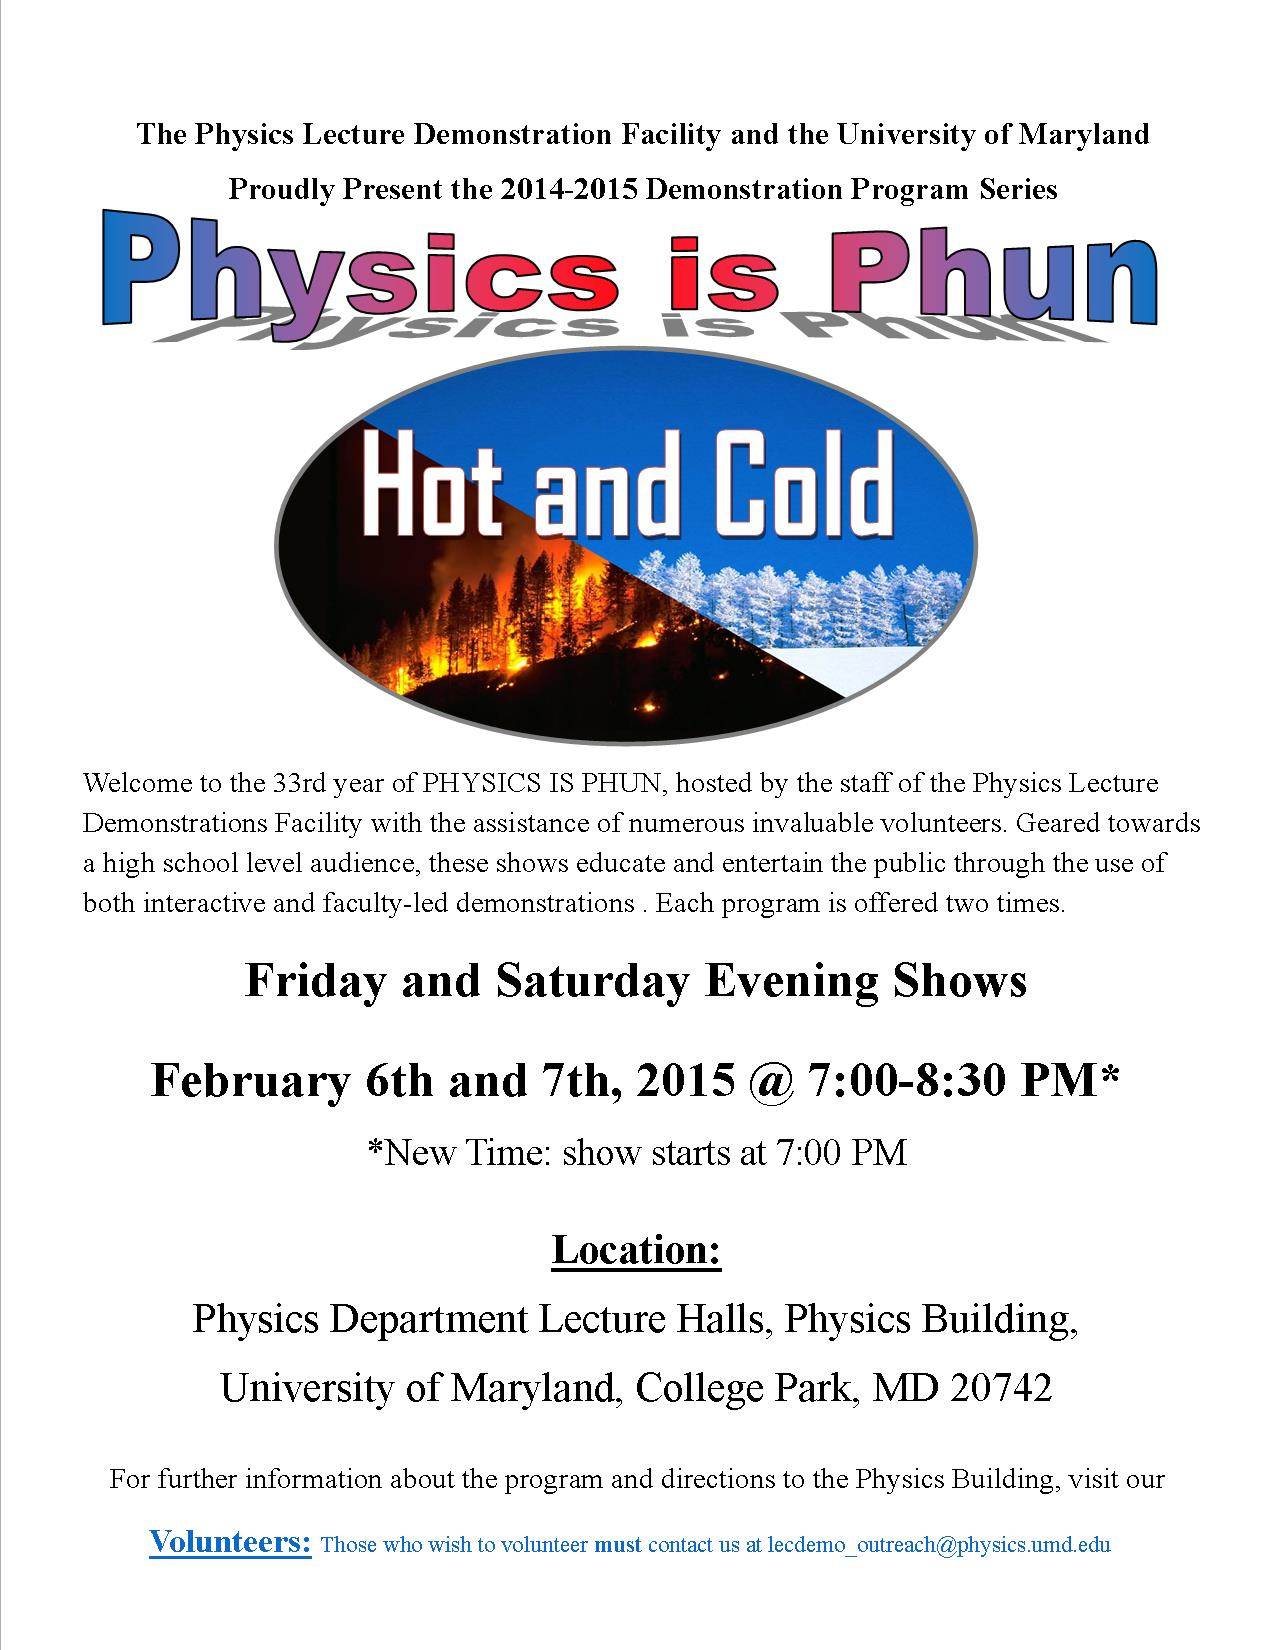 PiP Hot and Cold flyer